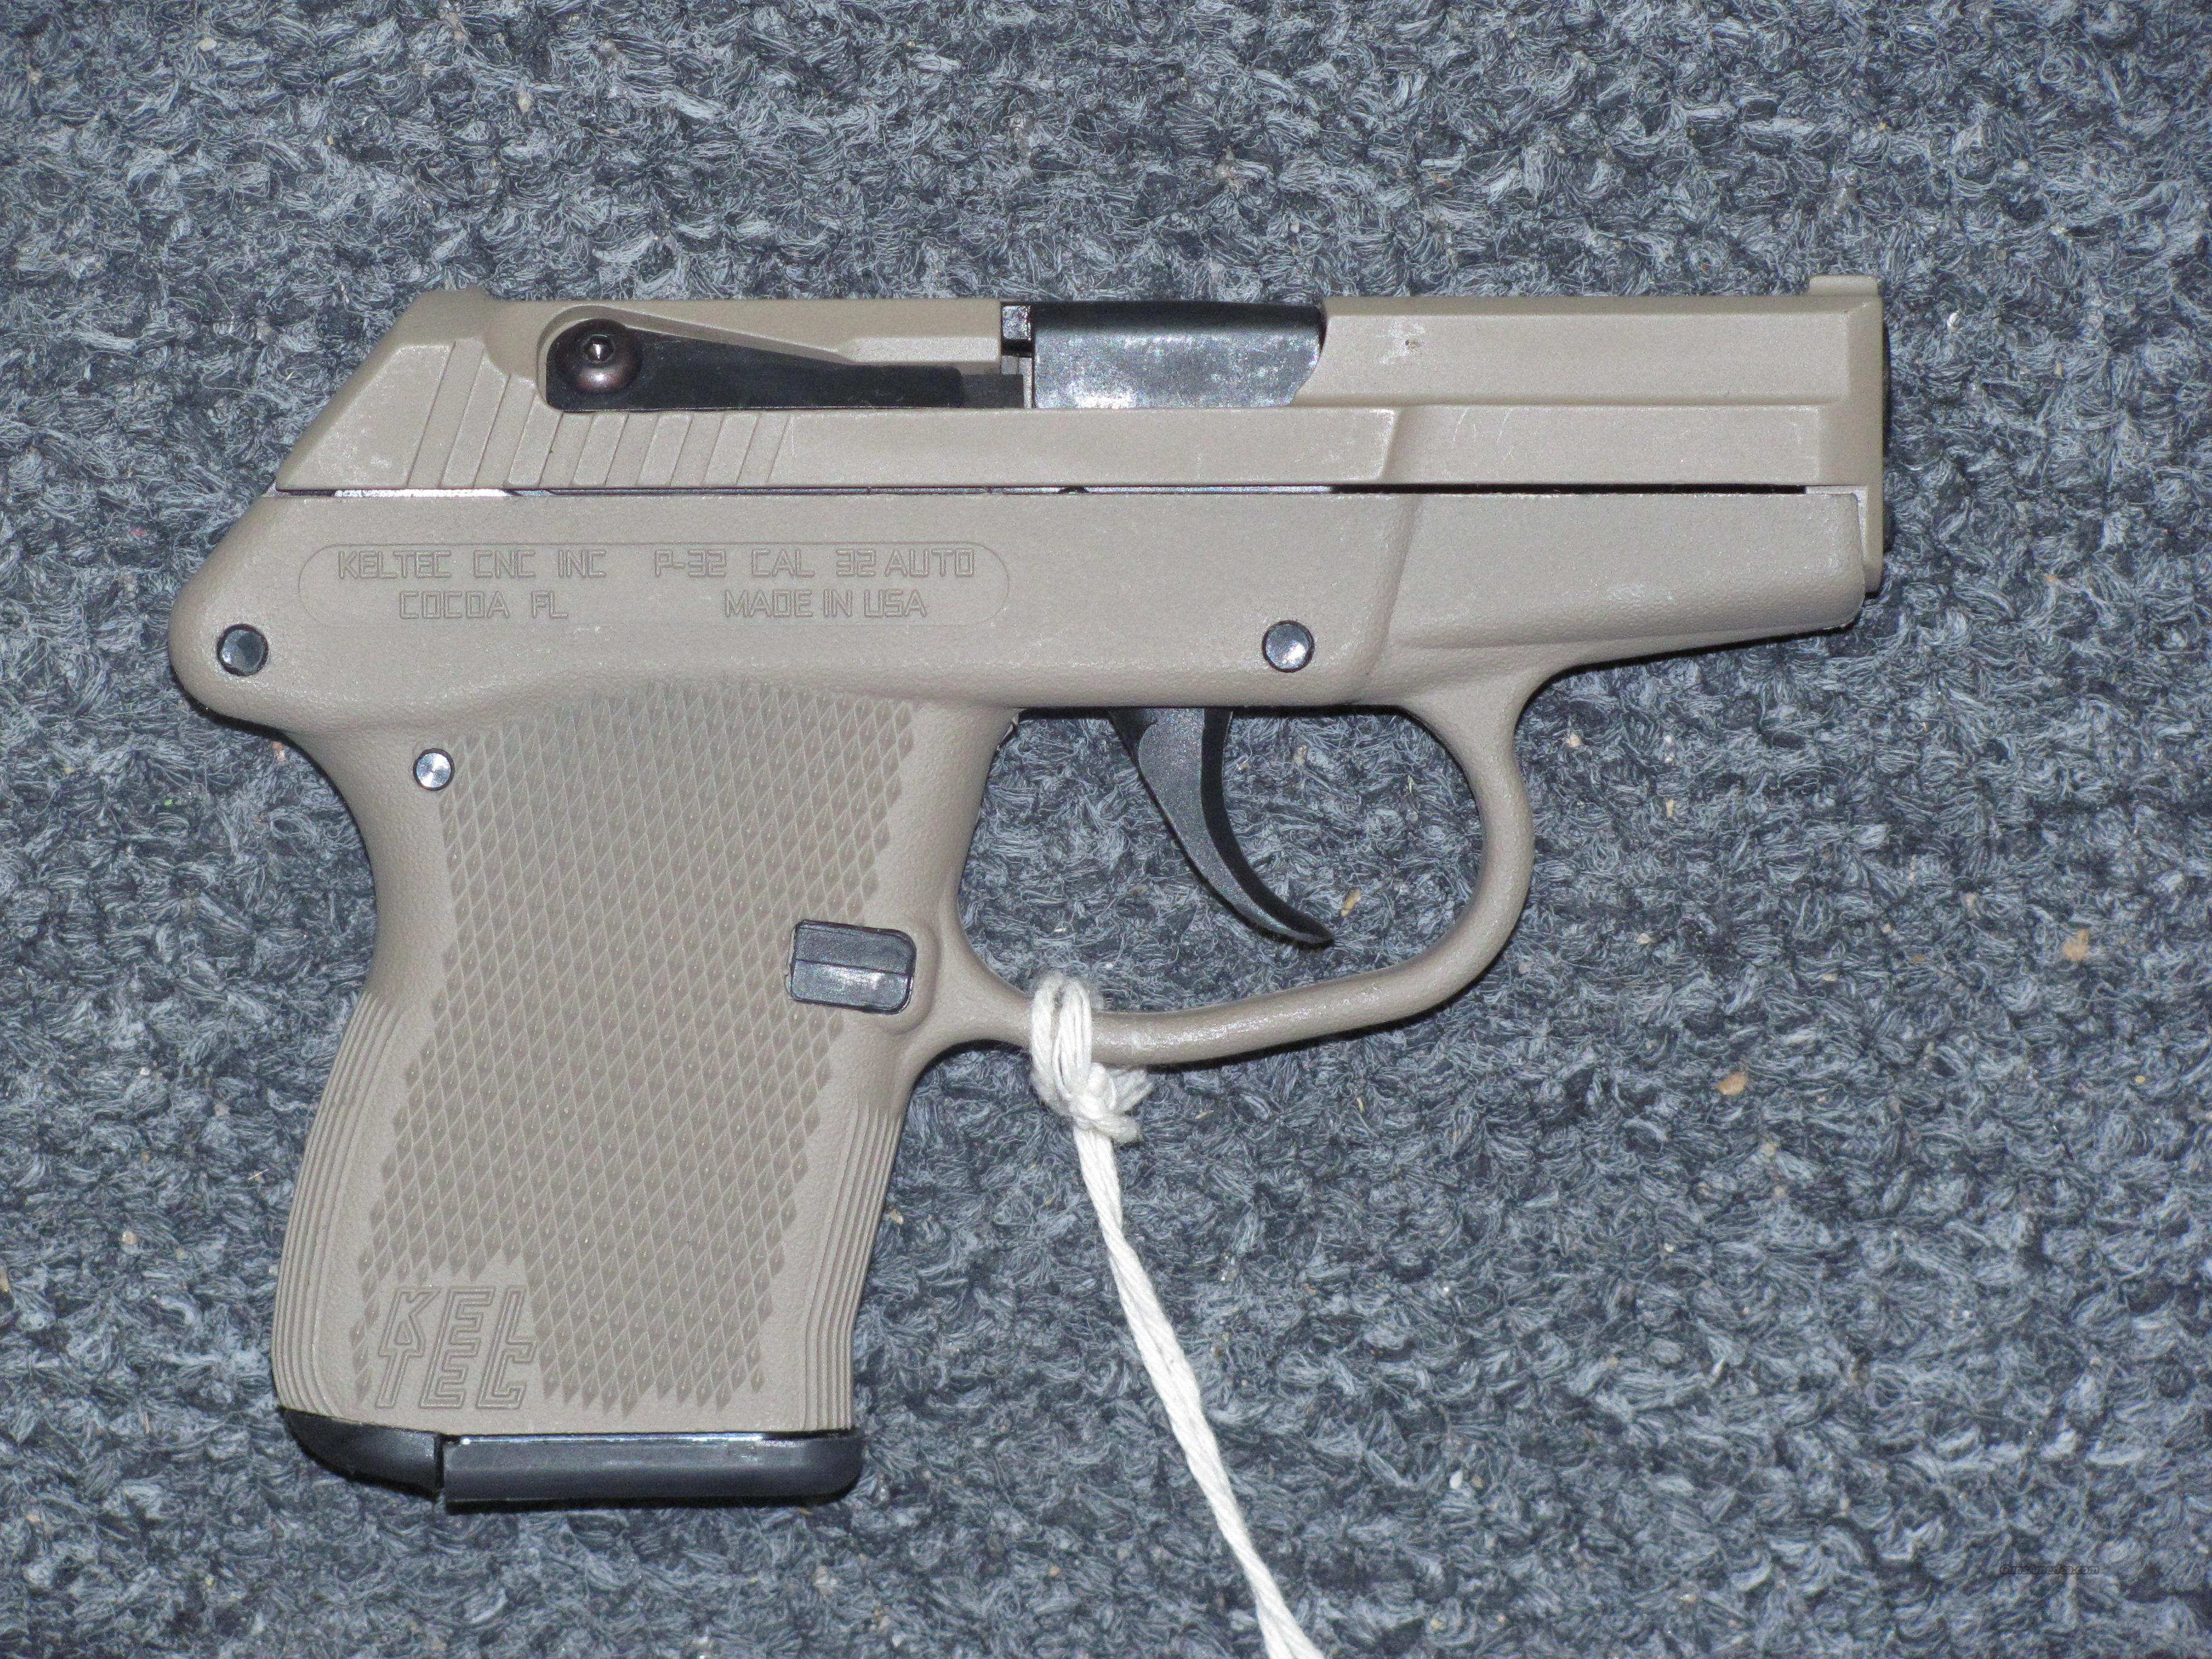 P32 w/Tan Finish  Guns > Pistols > Kel-Tec Pistols > Pocket Pistol Type